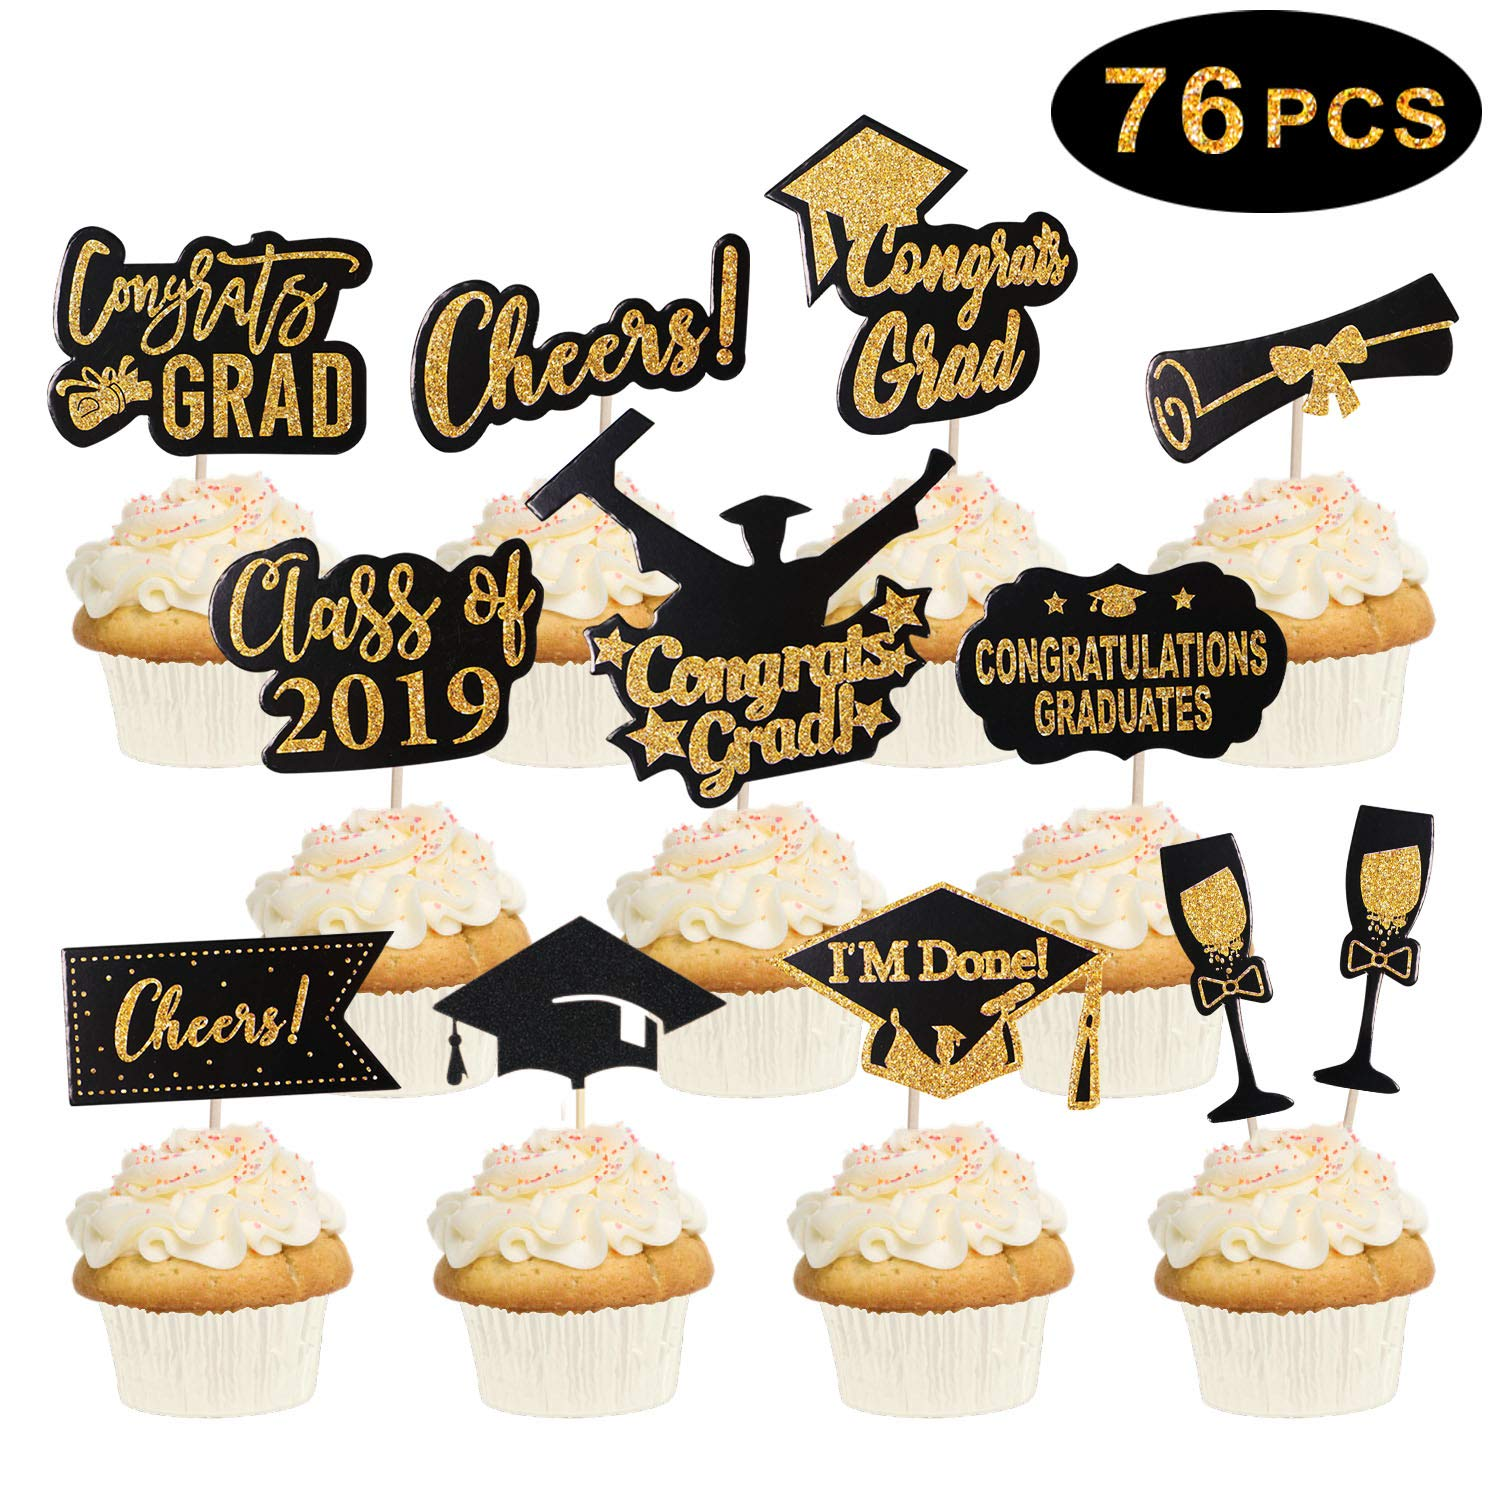 76 Pcs Graduation Cupcake Toppers 2019 Graduation Party Decorations Cake Picks Toppers Class Of 2019 Graduation Party Supplies